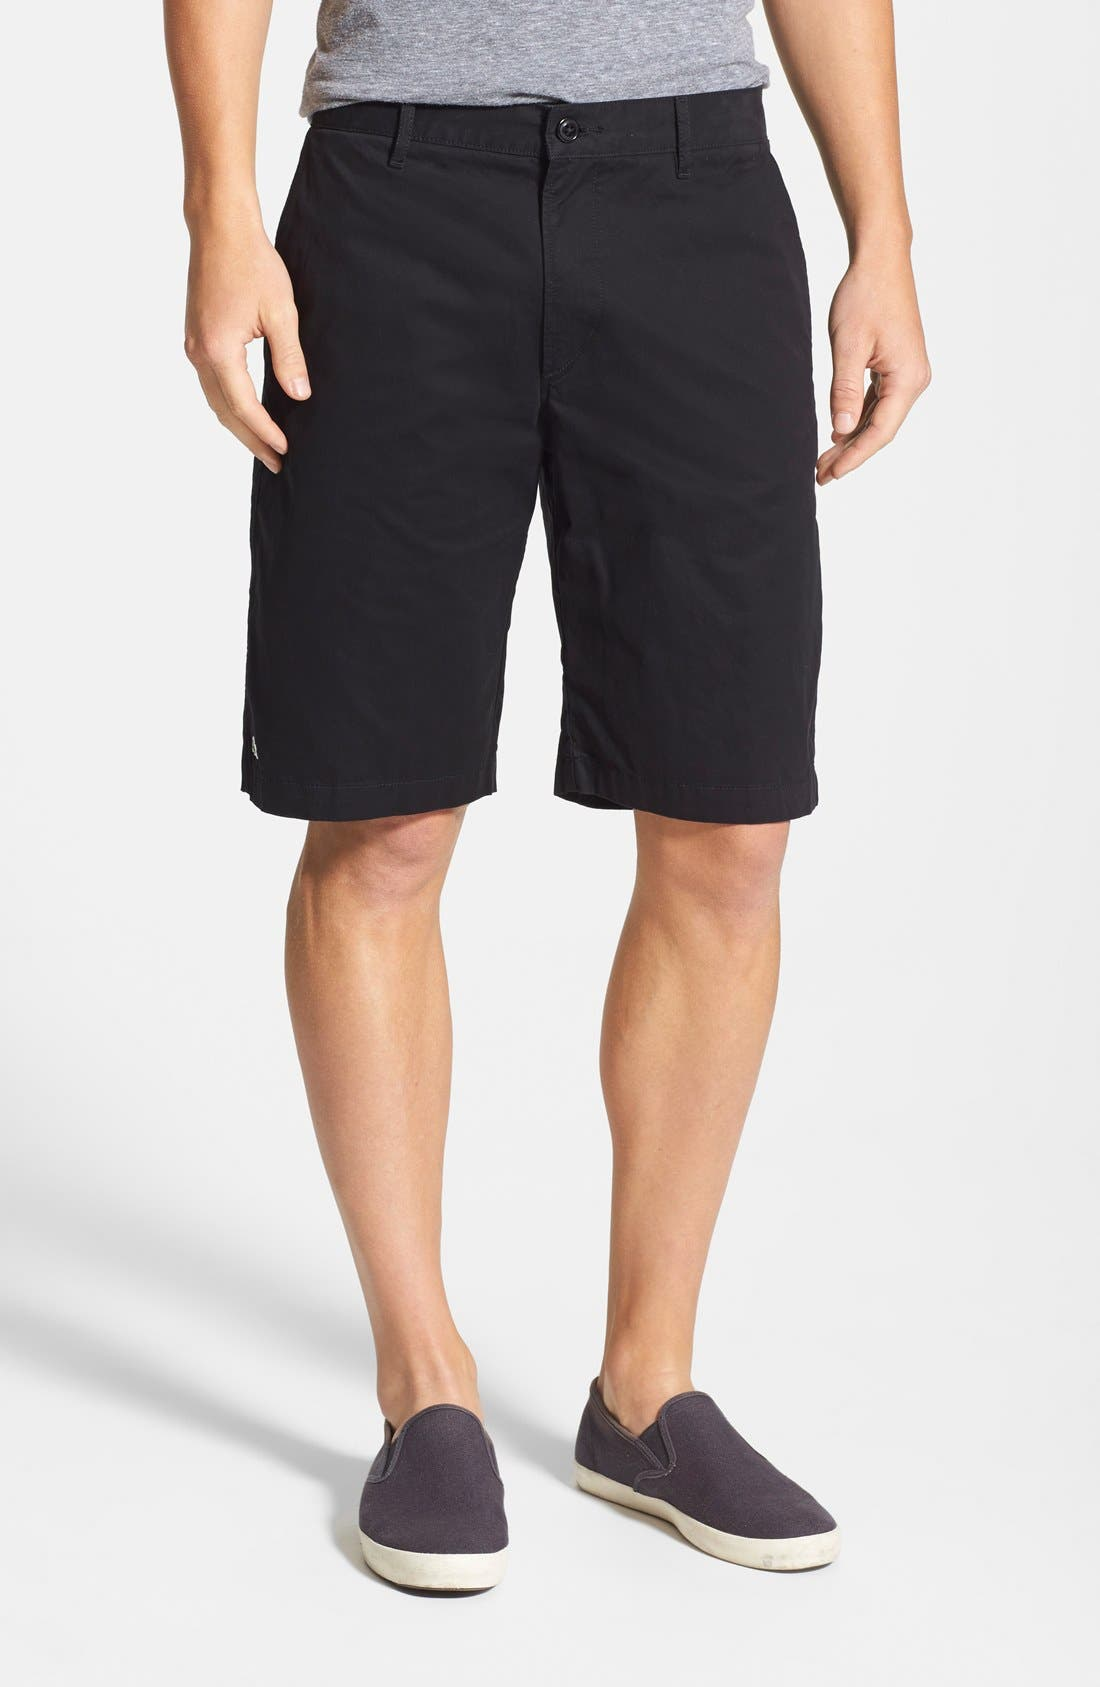 Alternate Image 1 Selected - Lacoste Relaxed Fit Bermuda Shorts